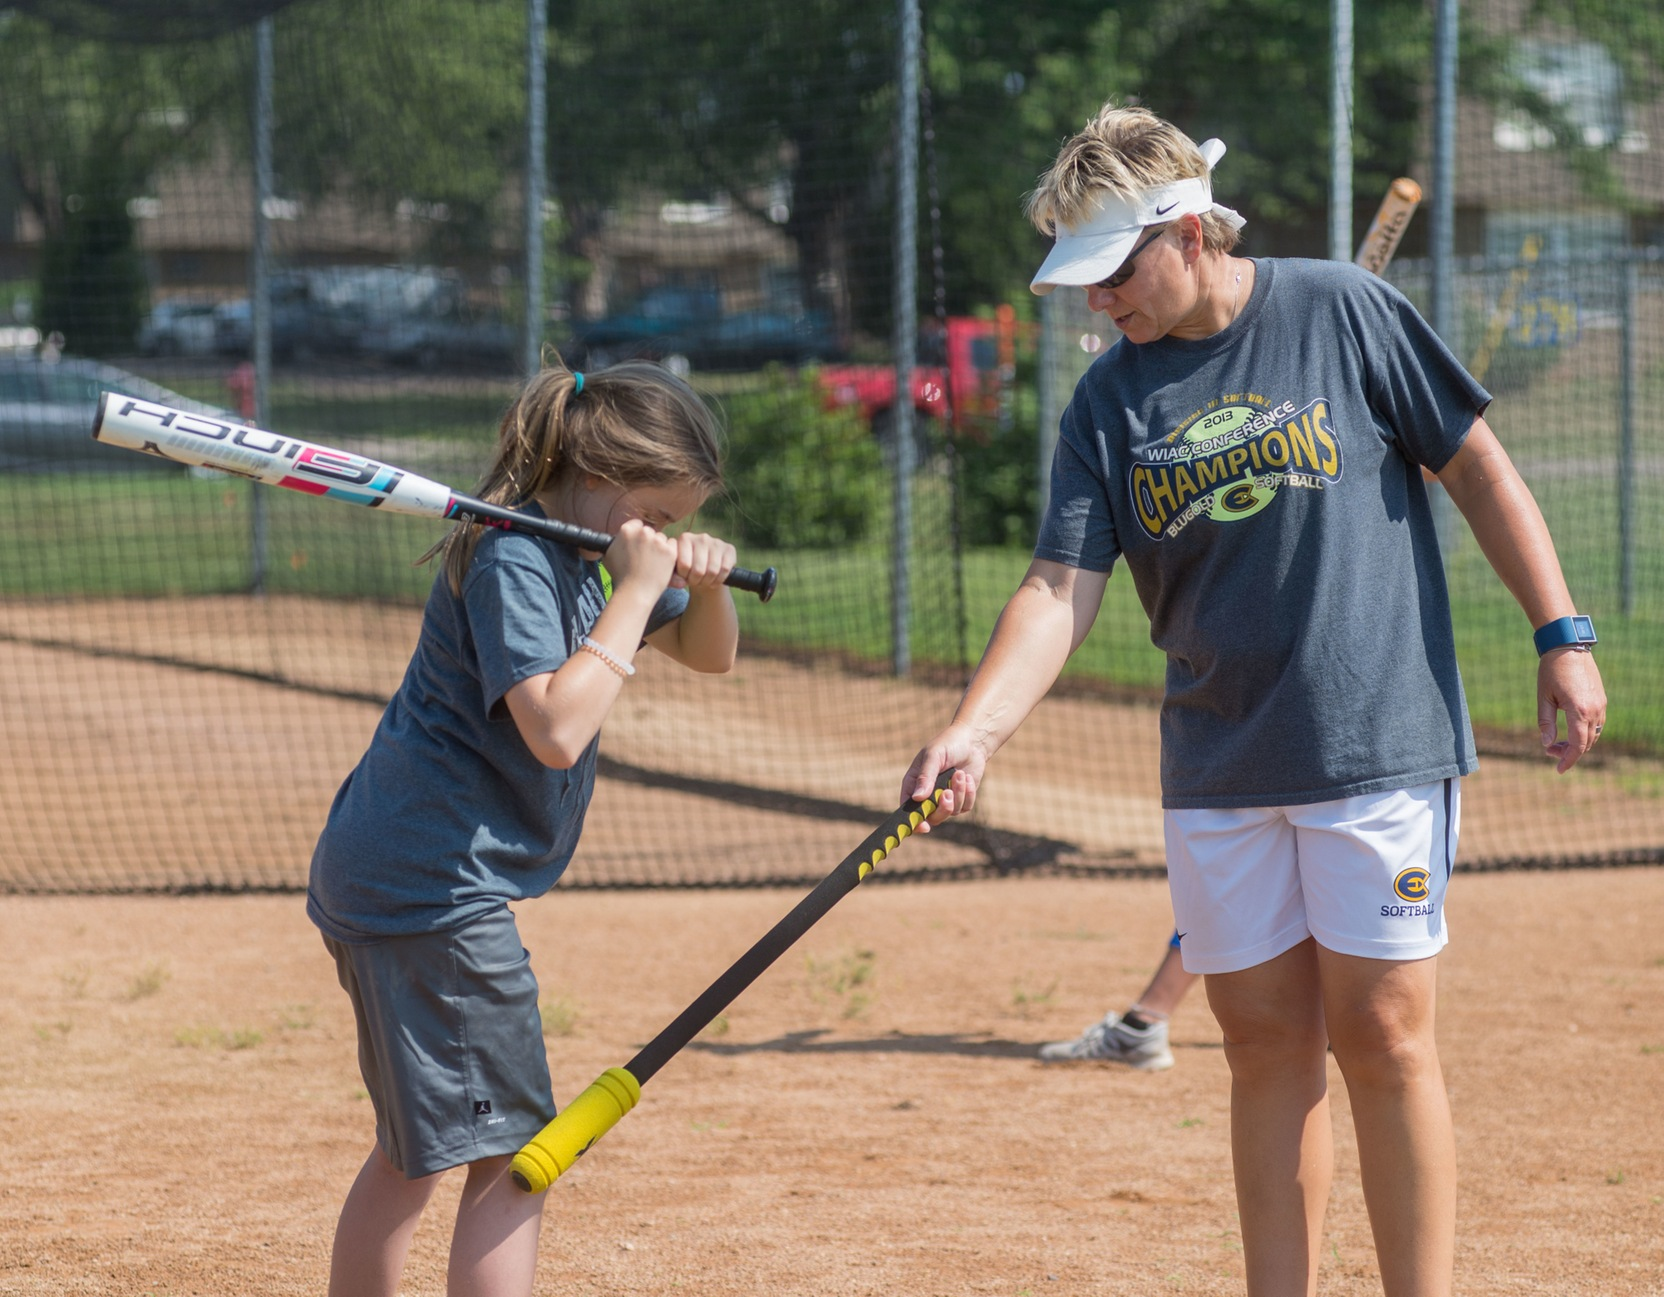 Schenck of Hitting Illustrated to lead clinics in September